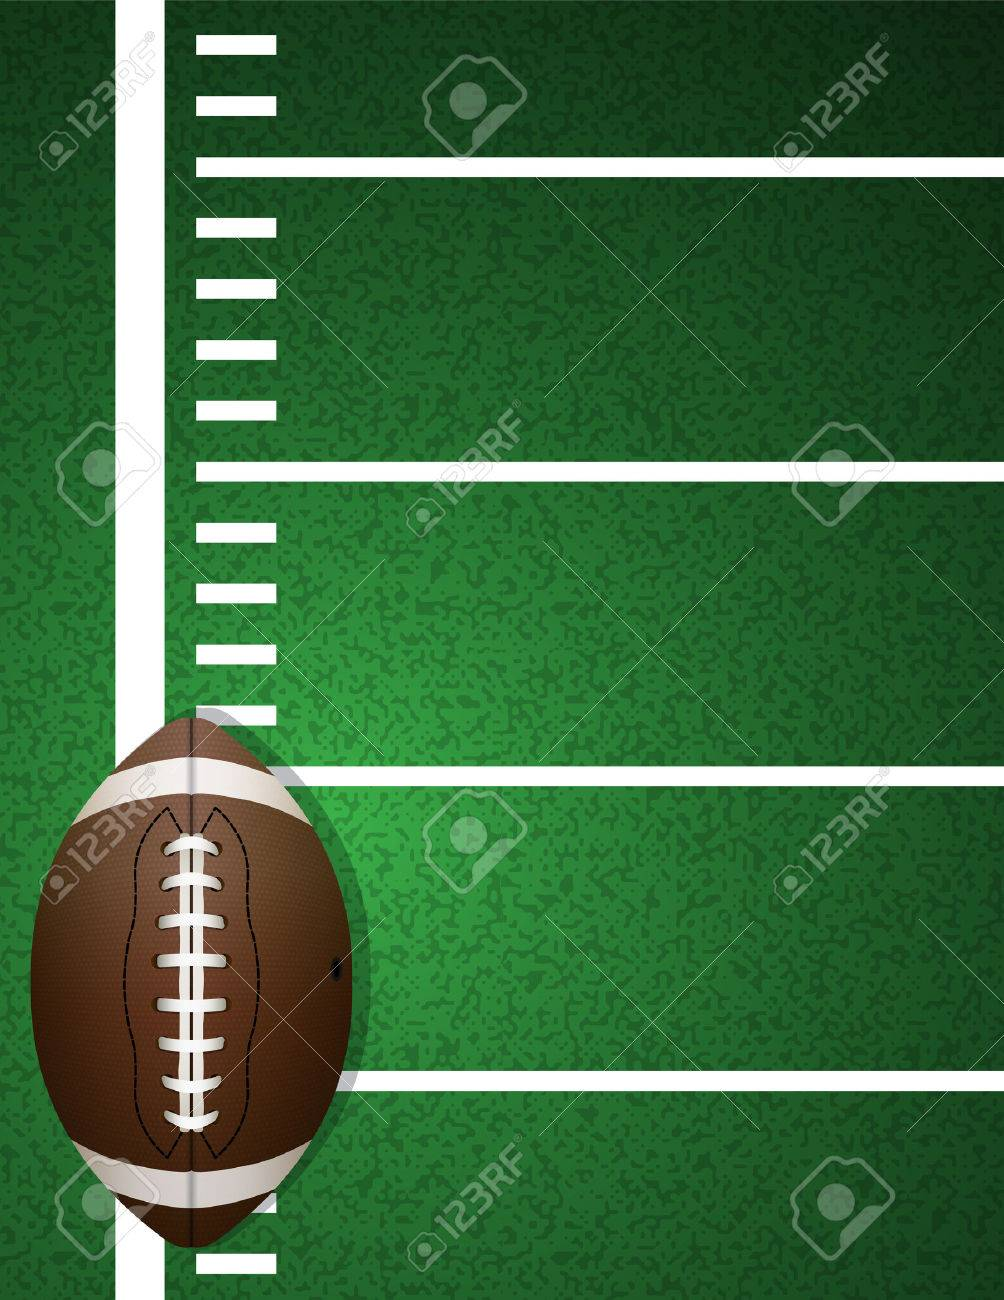 An illustration of an American football on a realistic textured turf field background. - 51394601